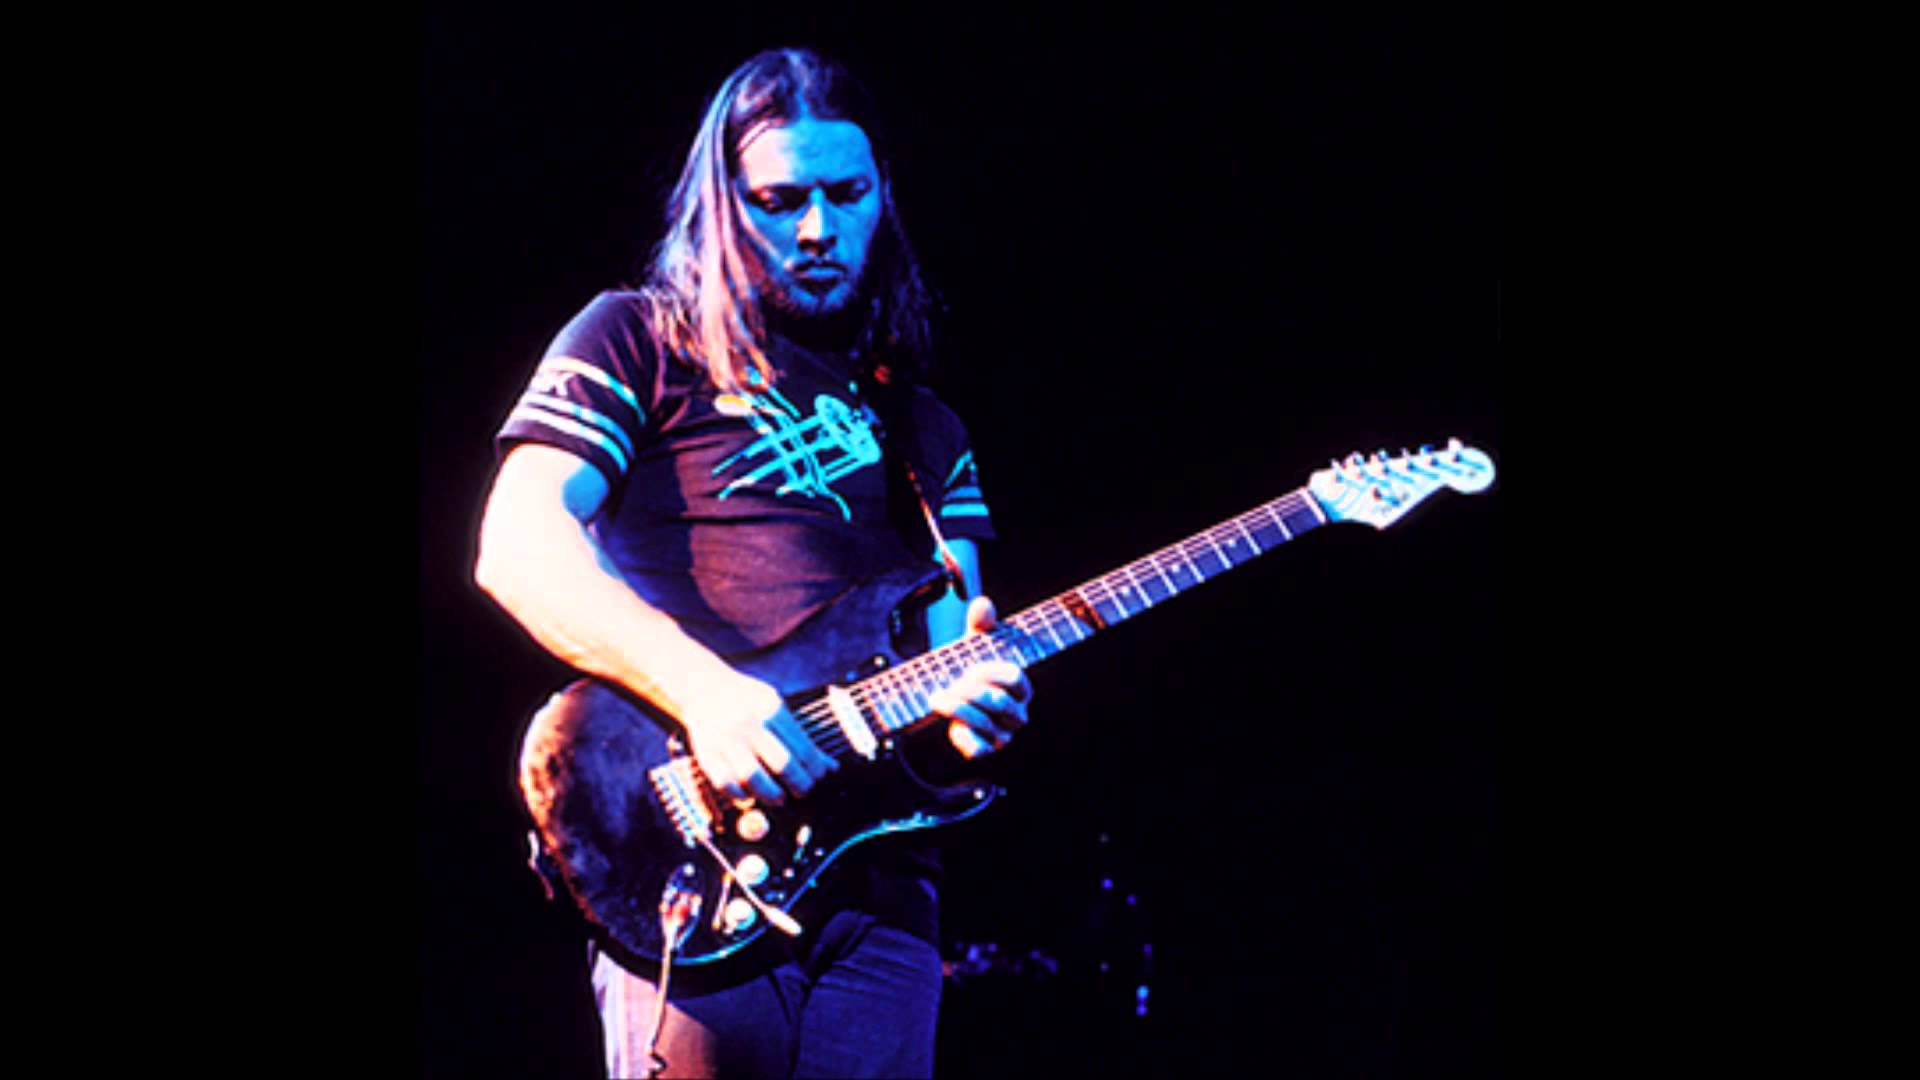 David Gilmour Wallpaper